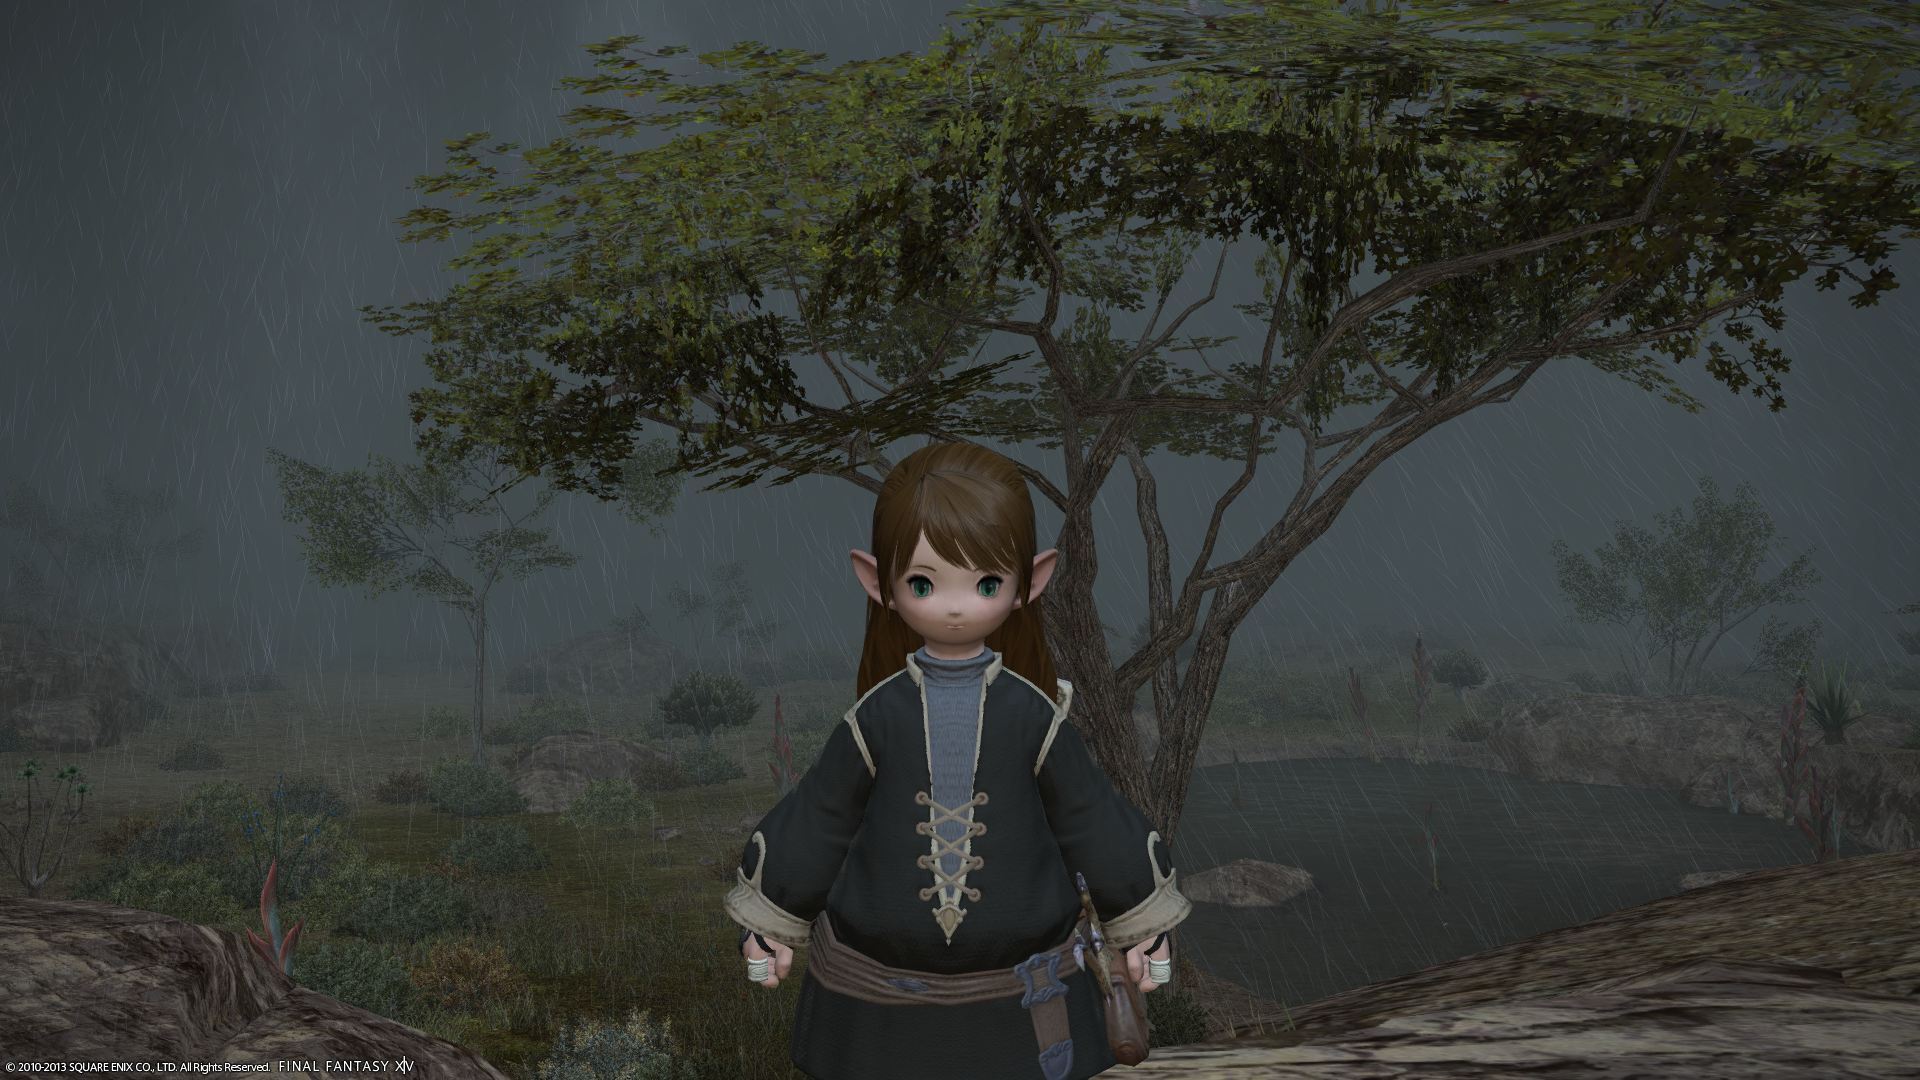 kipling ffxiv know ears really this used shitpost with just like deal forum over month entire grind inb4 lala thread picture cute lalafell coming that fate posting soon